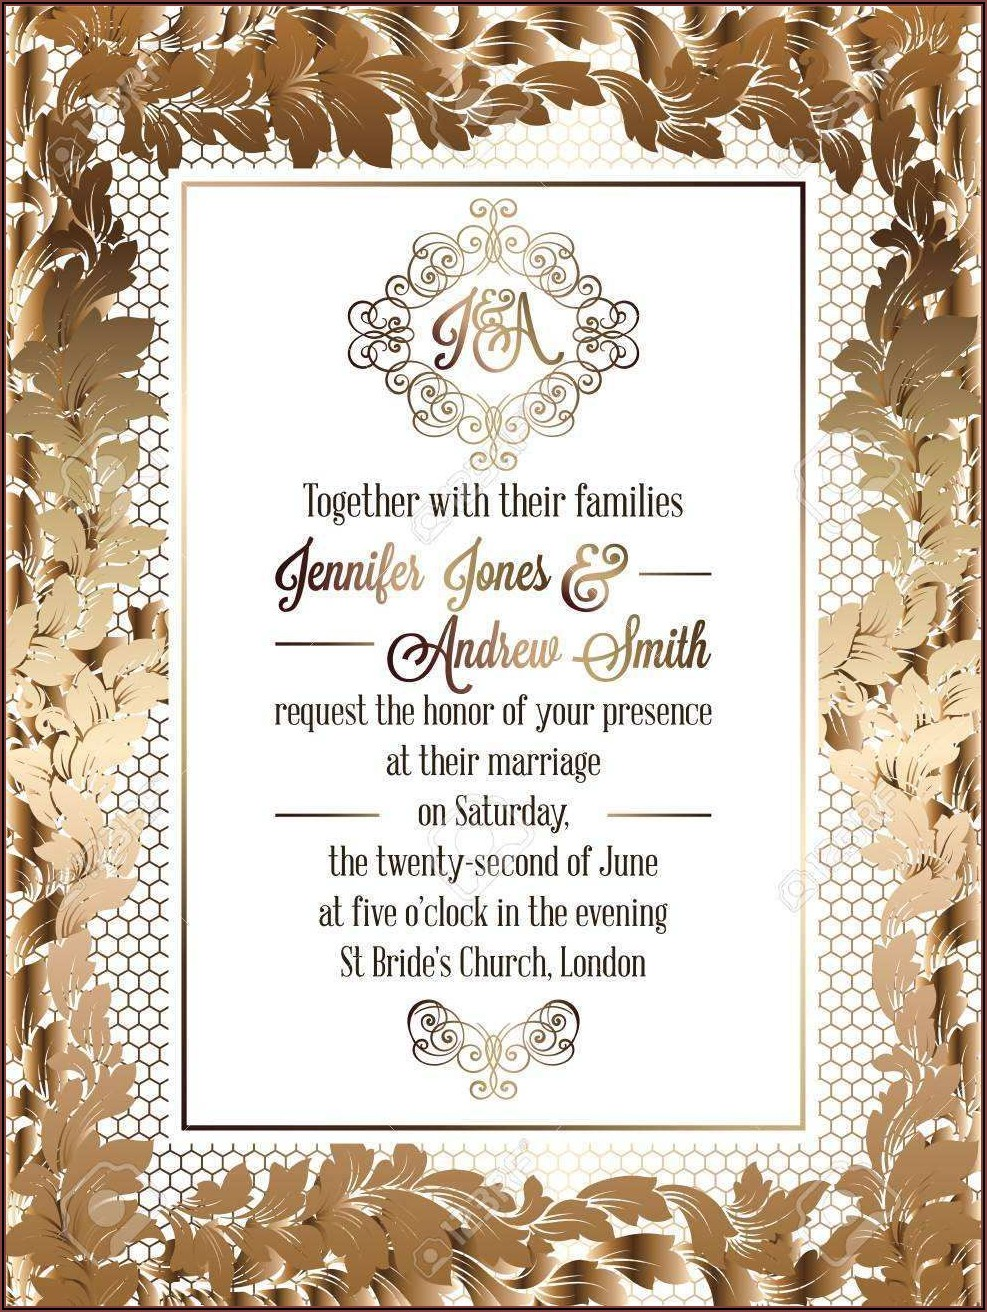 Formal Invitation Card Design Template